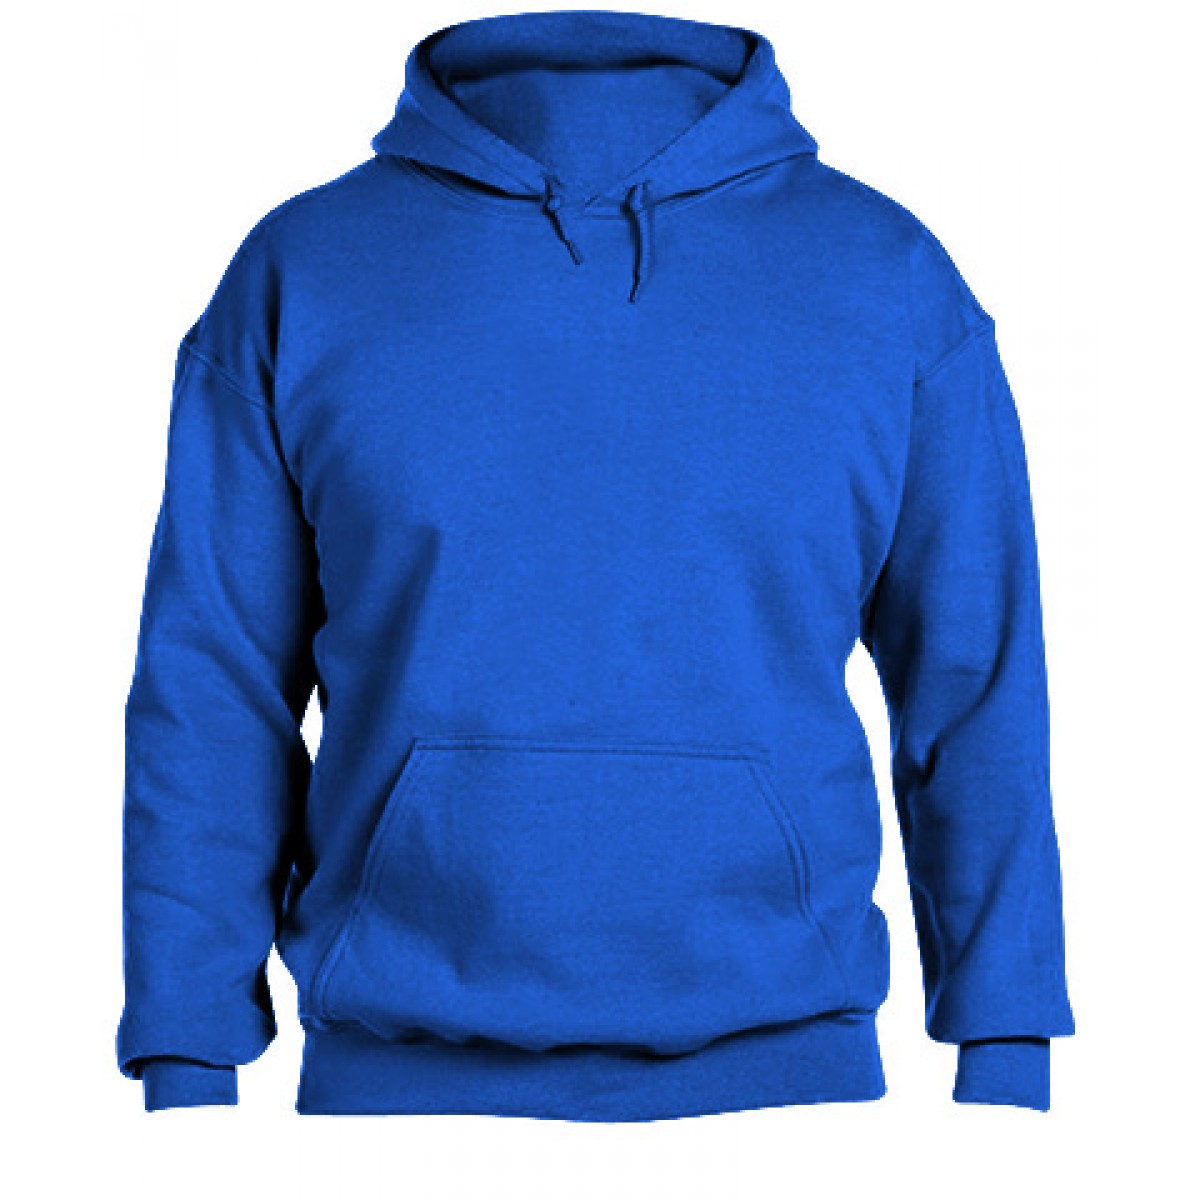 Hooded Sweatshirt 50/50 Heavy Blend-XL